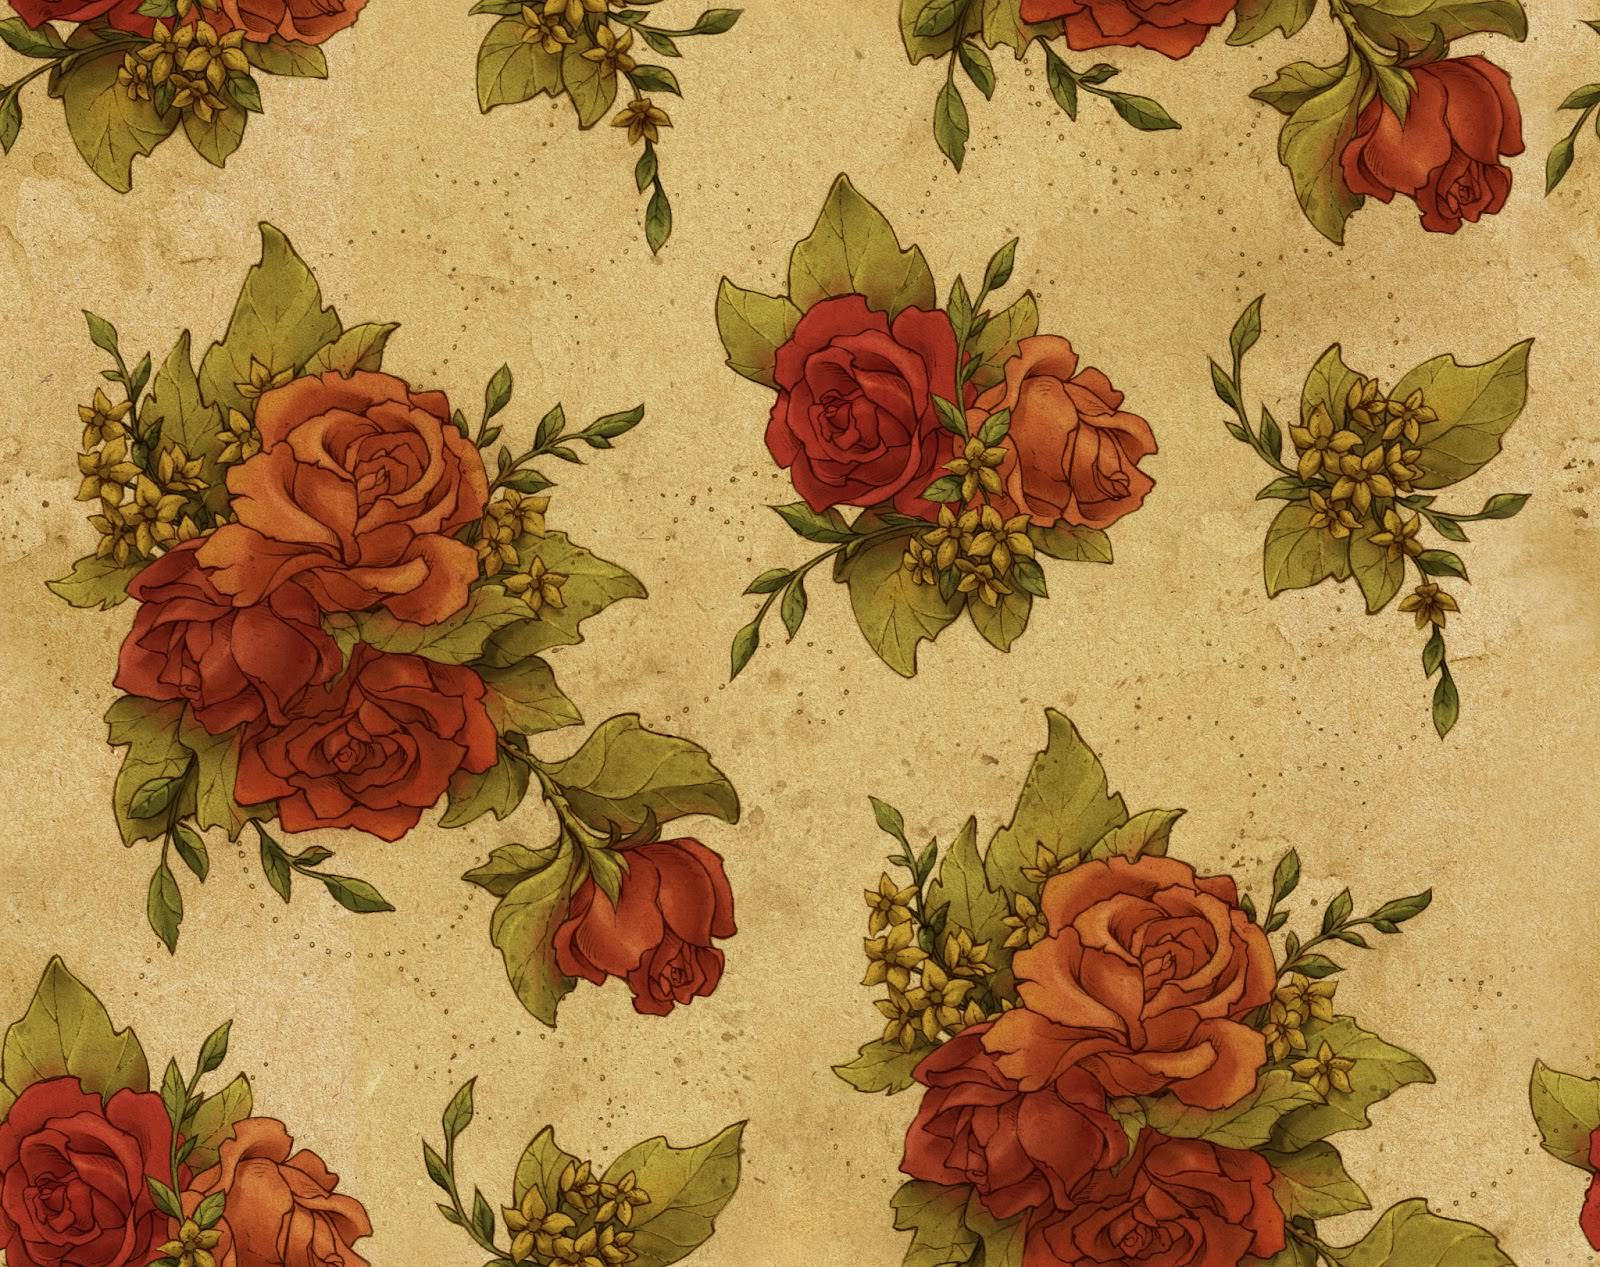 Free Download Vintage Floral Print Wallpaper 1600x1267 For Your